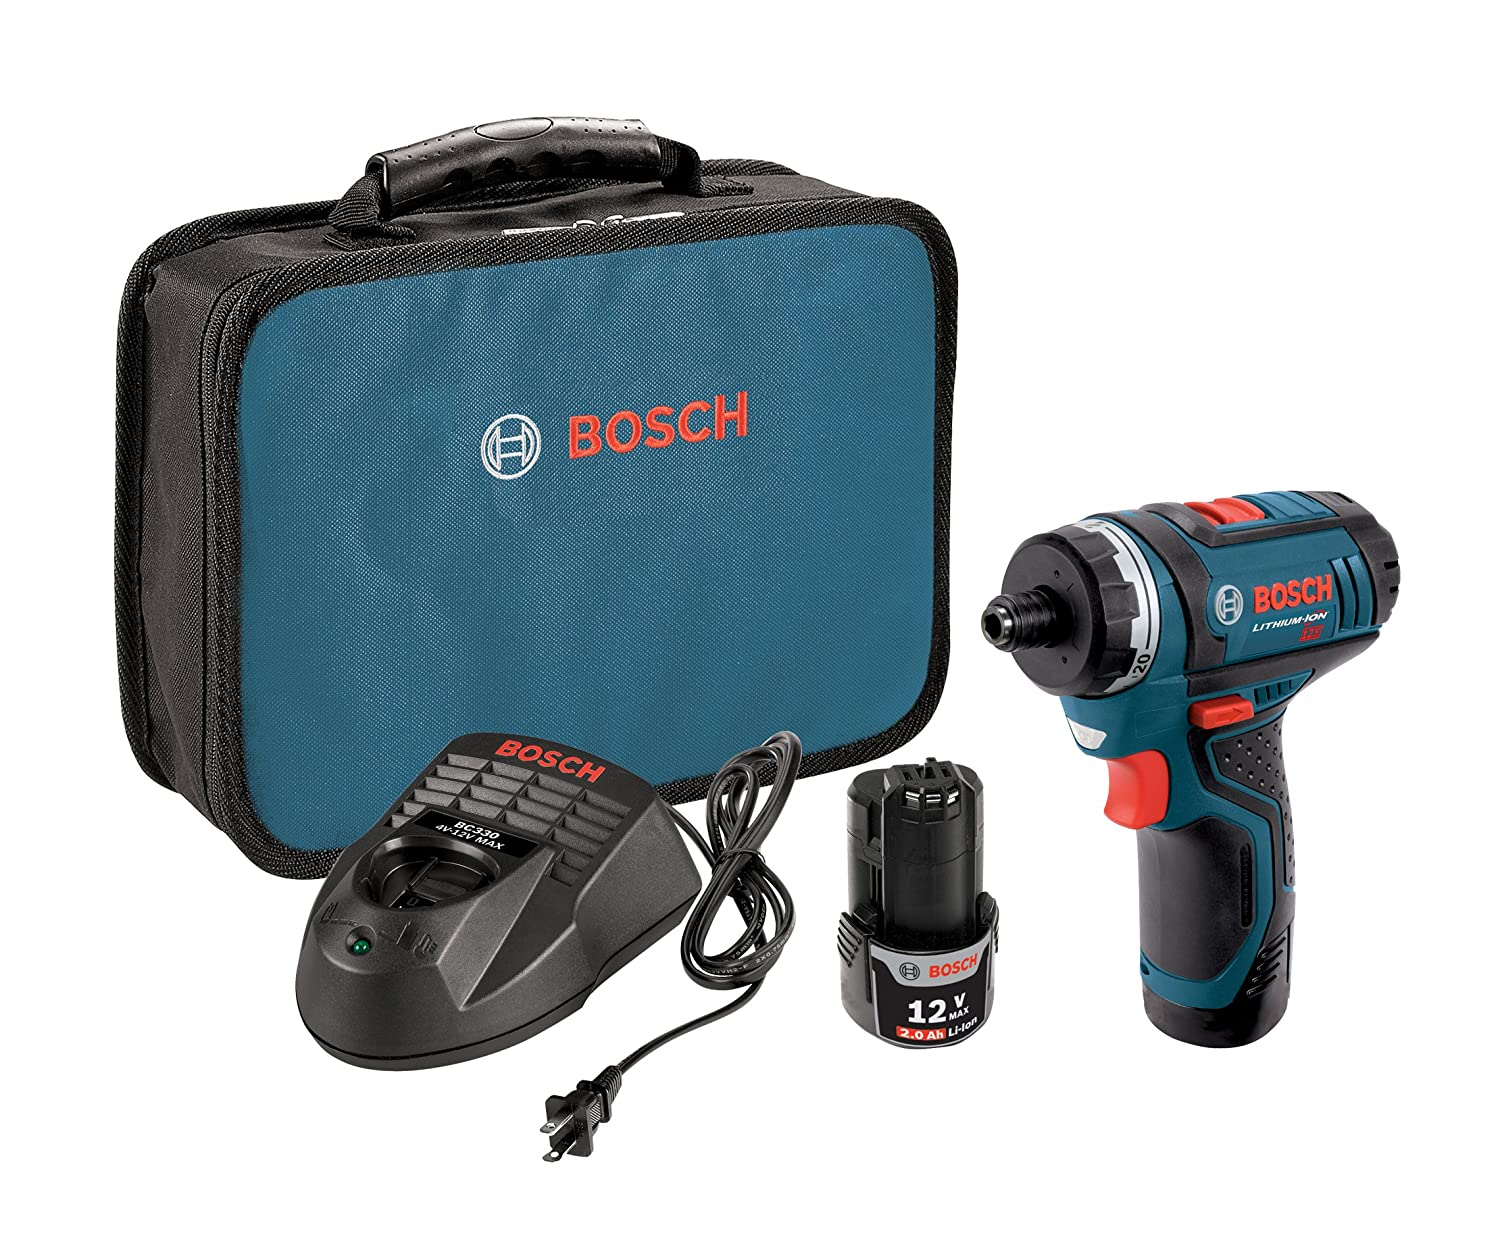 $104.30($139.99)Bosch PS21-2A 12-Volt Max Lithium-Ion 2-Speed Pocket Driver Kit with 2 Batteries, Charger and Case